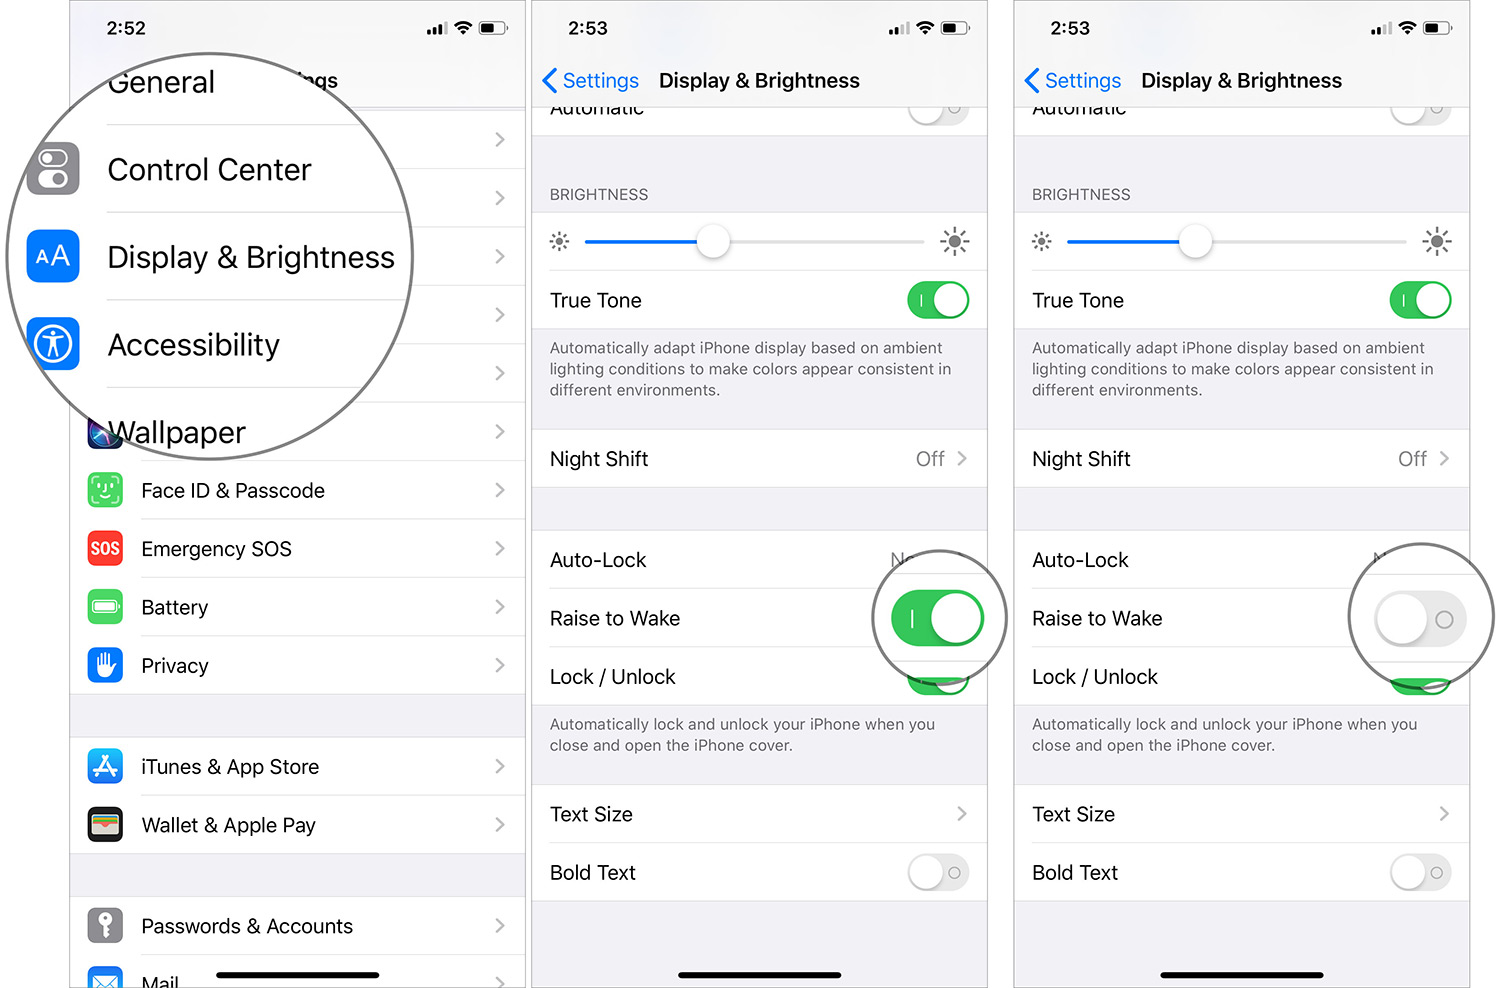 Desactivar Raise to Wake en iPhone con iOS 13